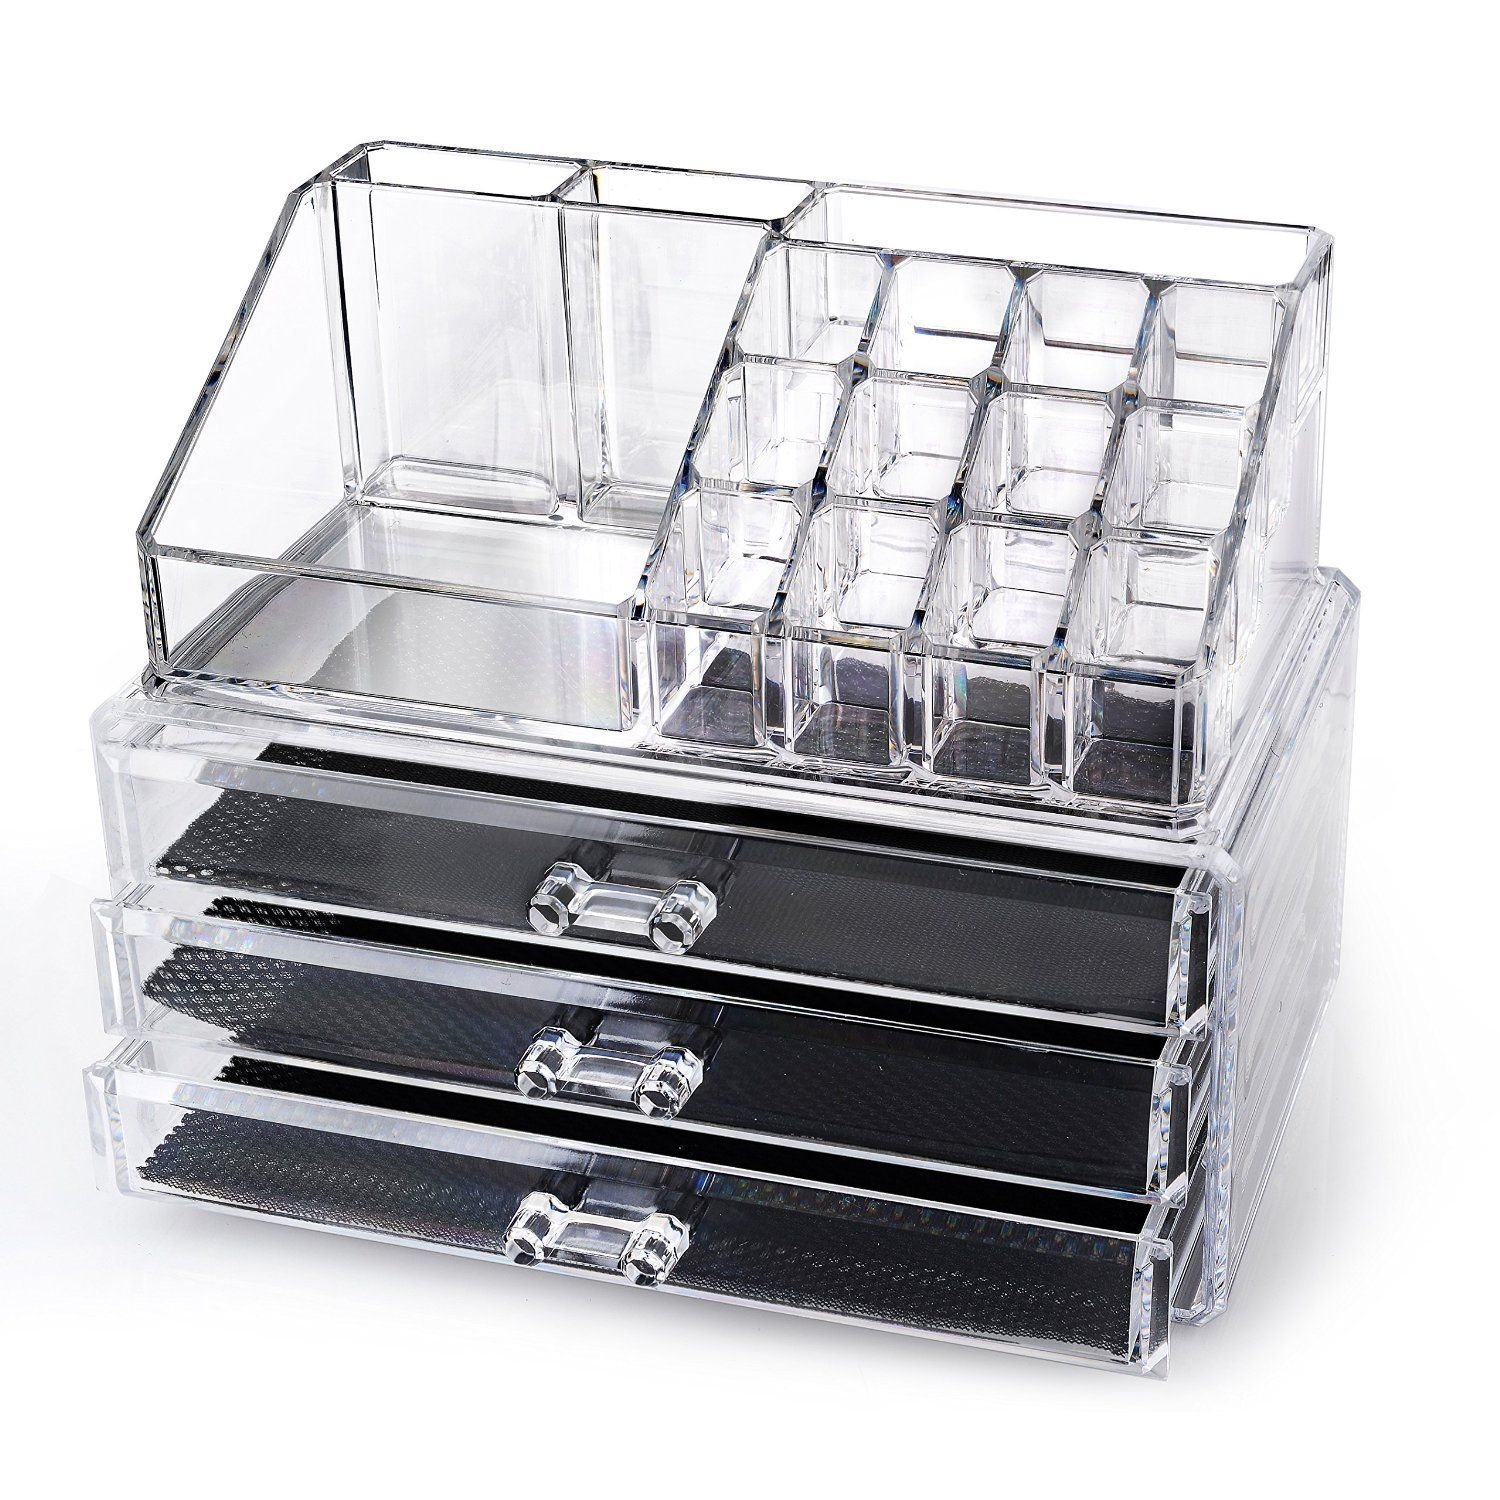 Generic YanHong-US3-151027-117 8yh2482yh r 2 pcs Clear Jewelry Chest Make ke Up Case Cosmetic Holder Cosmetic Up Case Organizer awers Jew Large 3 Drawers der Large 2 pcs Clear by Generic